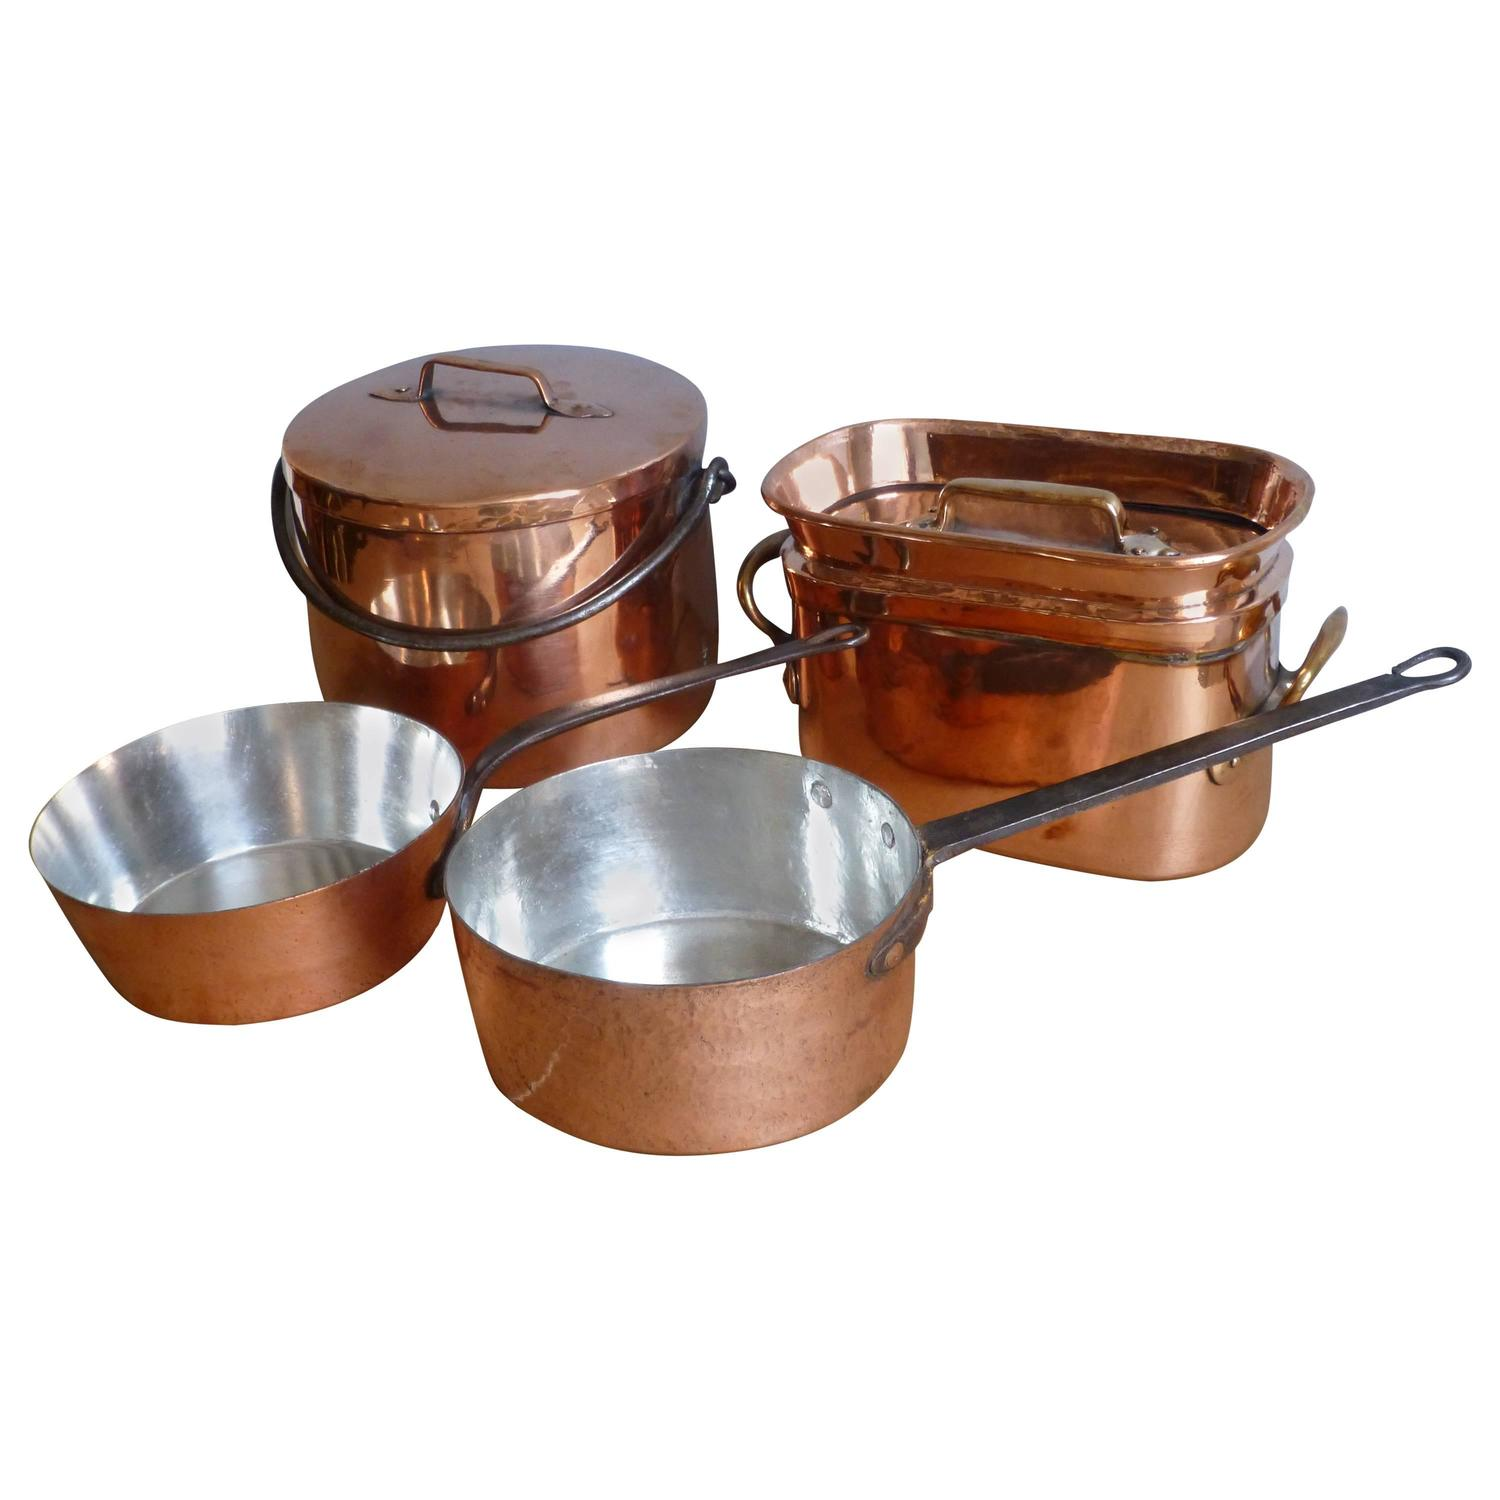 copper pans and pots 28 images small batterie de la cuisine of re tinned copper pans and. Black Bedroom Furniture Sets. Home Design Ideas